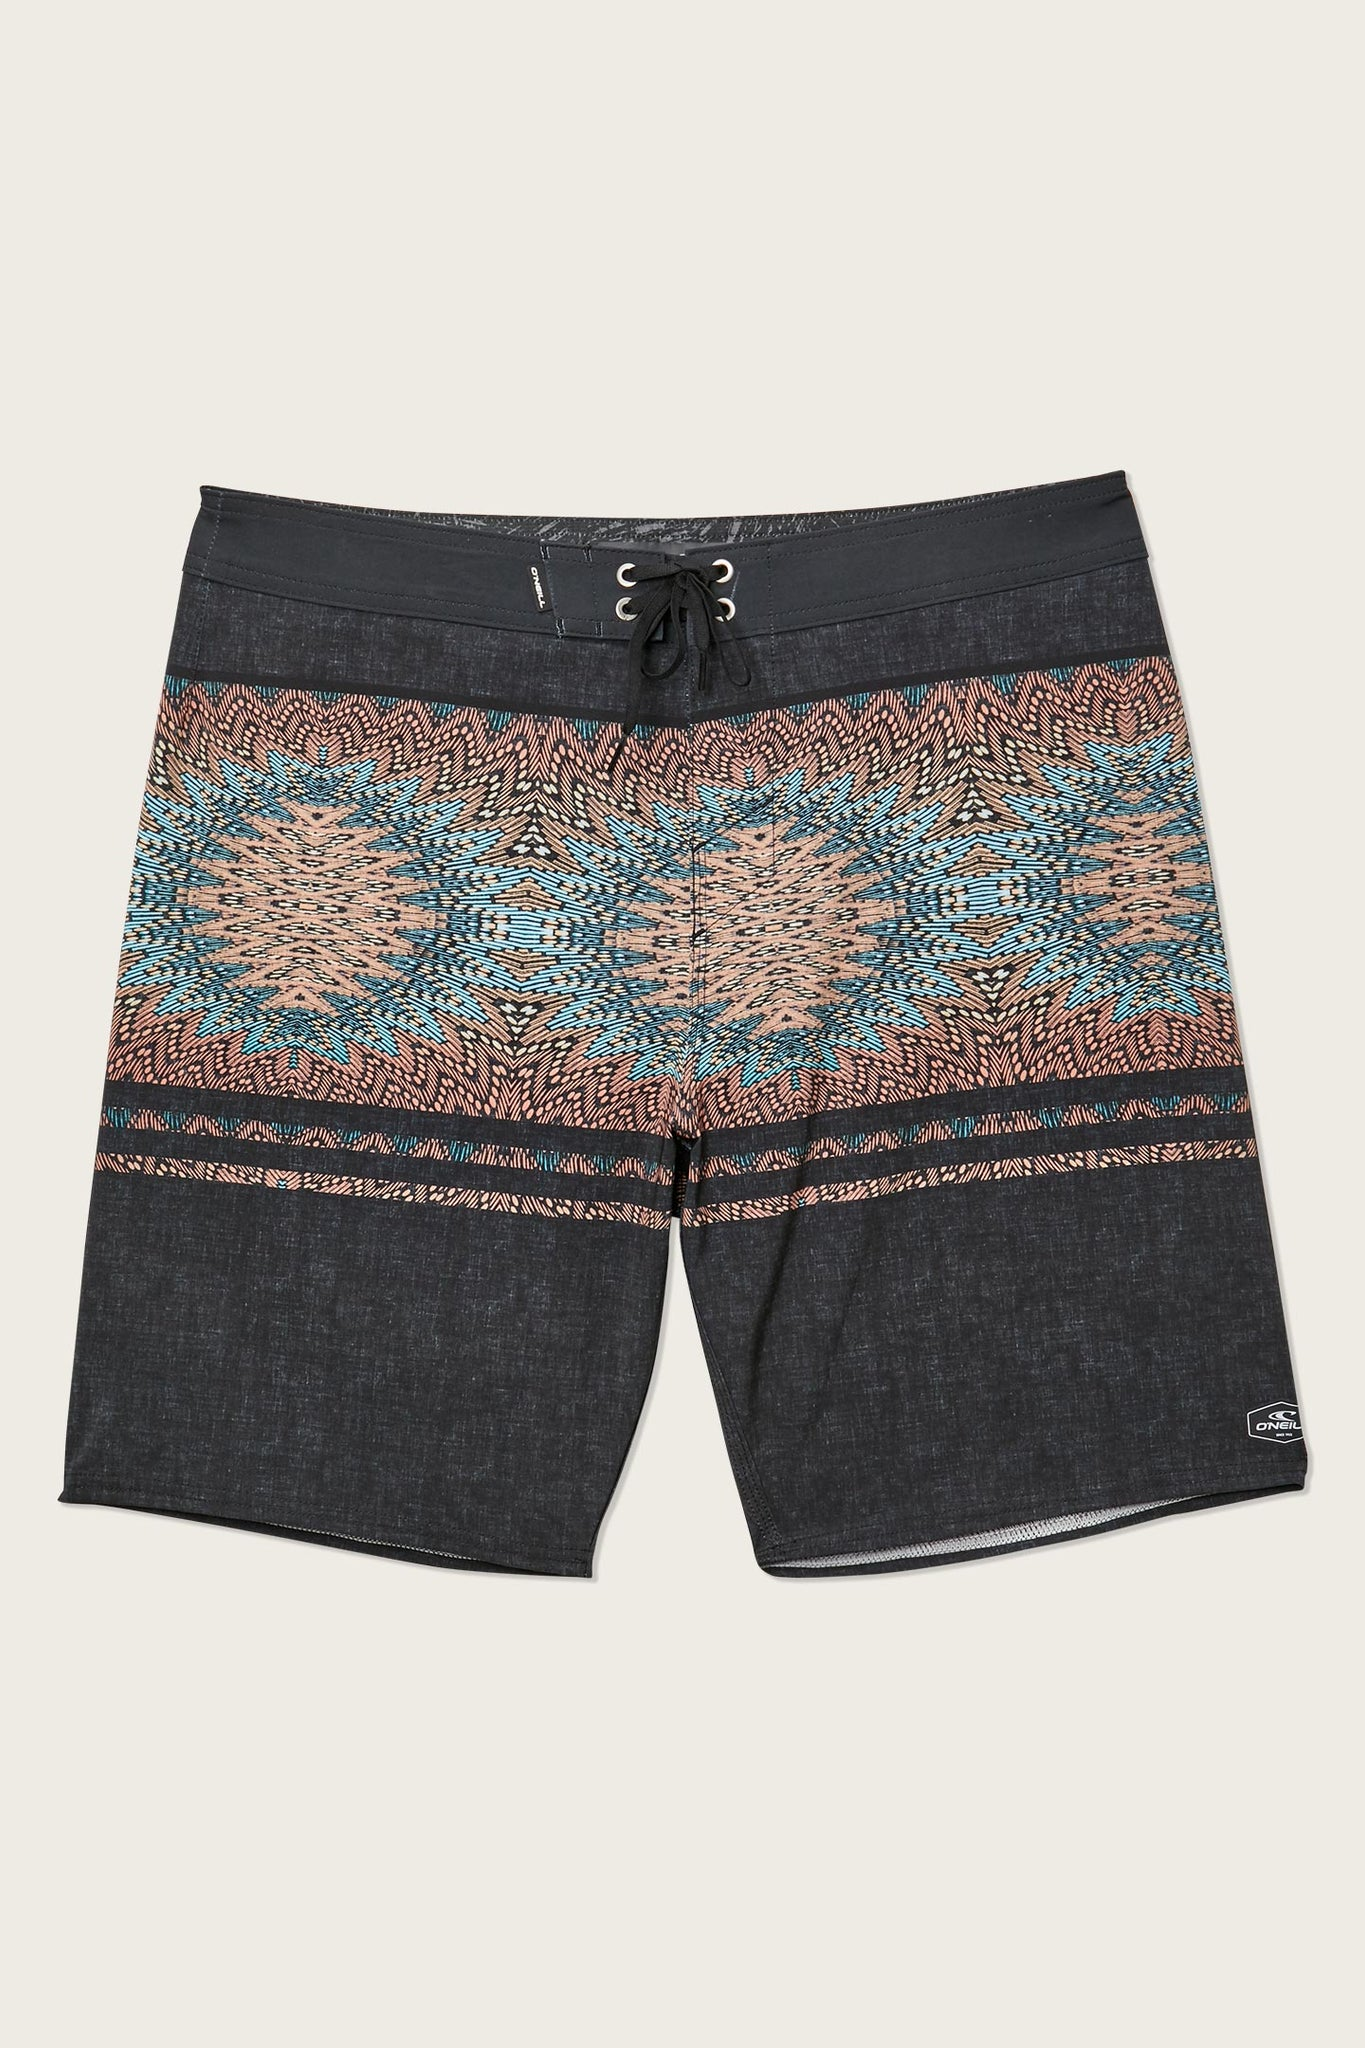 Boys Hyperfreak Native Boarshorts | O'Neill Clothing USA